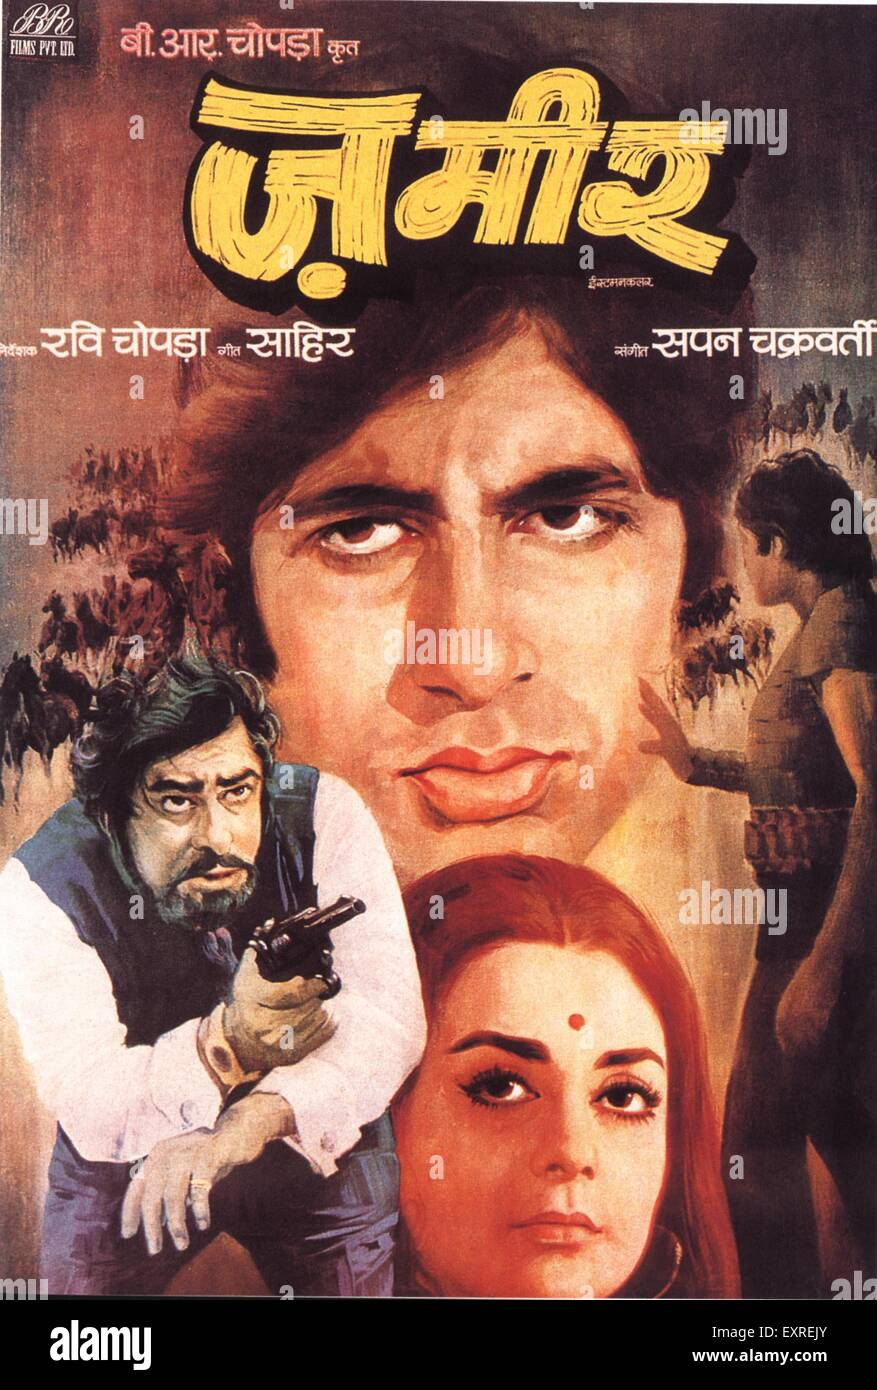 1970s India Bollywood Film Poster - Stock Image